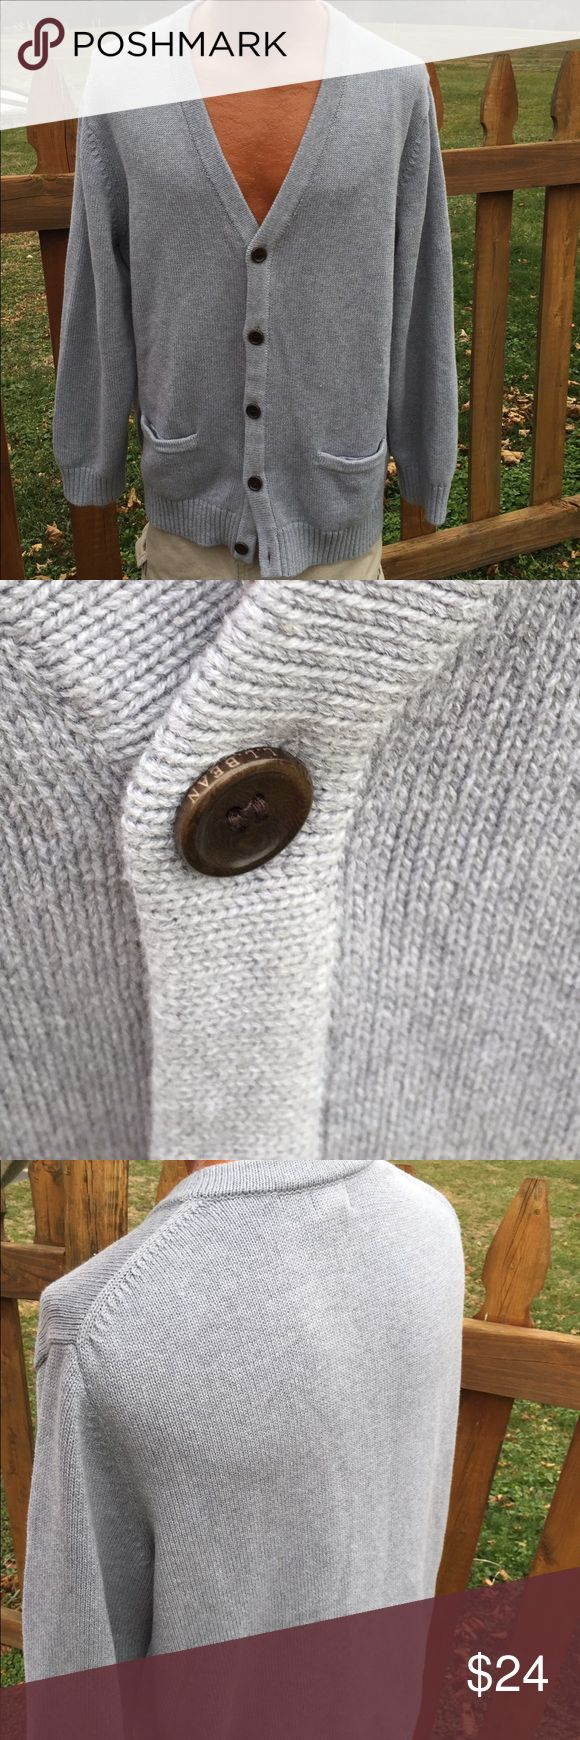 L.L. Bean Mens Cardigan Sweater Size XL Size XL. Super gently preowned. 100% cotton. Be sure to view the other items in our closet. We offer both women's and Mens items in a variety of sizes. Bundle and save!! Thank you for viewing our item!! L.L. Bean Sweaters Cardigan